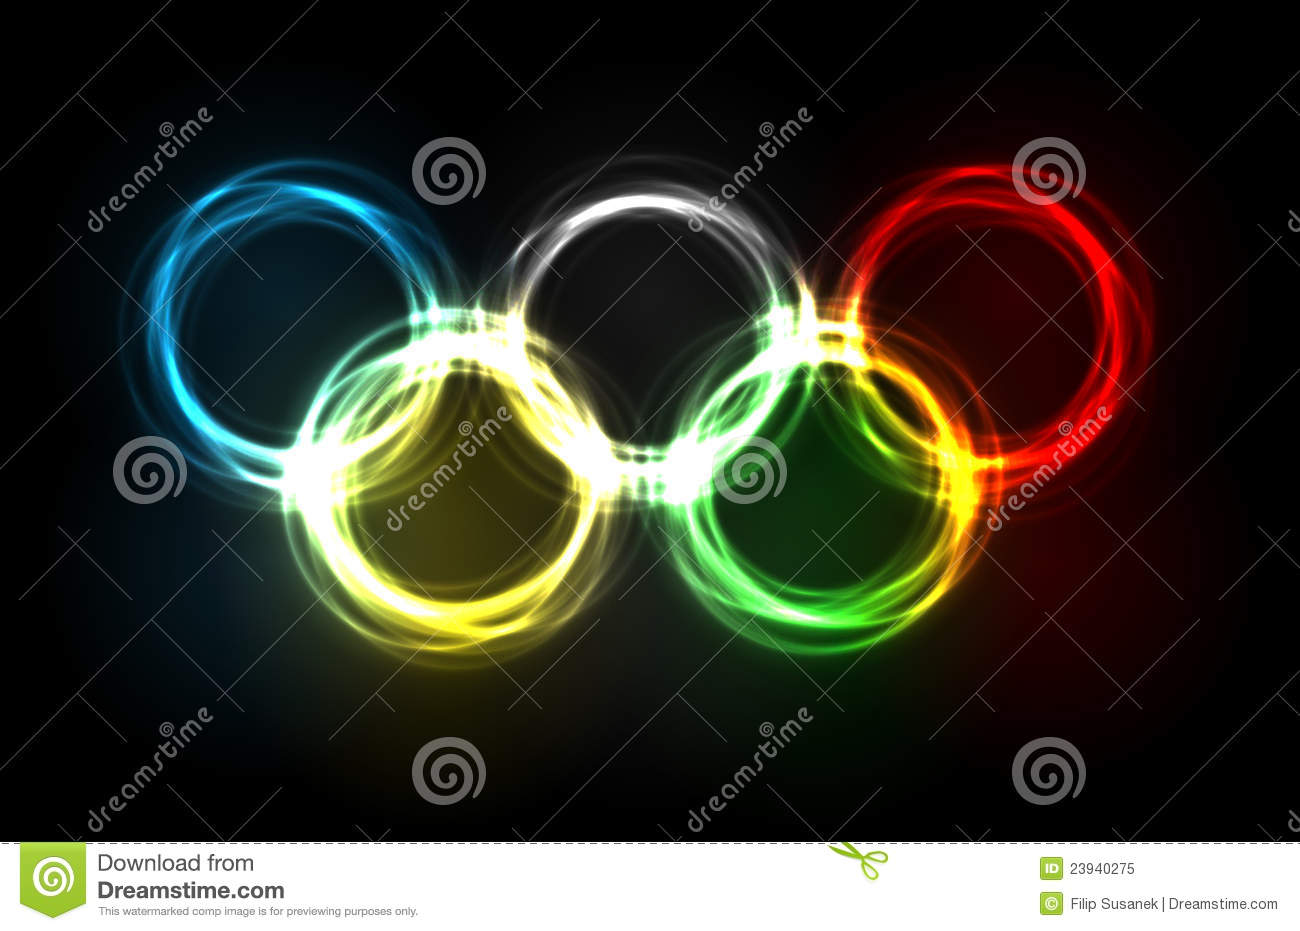 What Colours Make Up The Olympic Rings